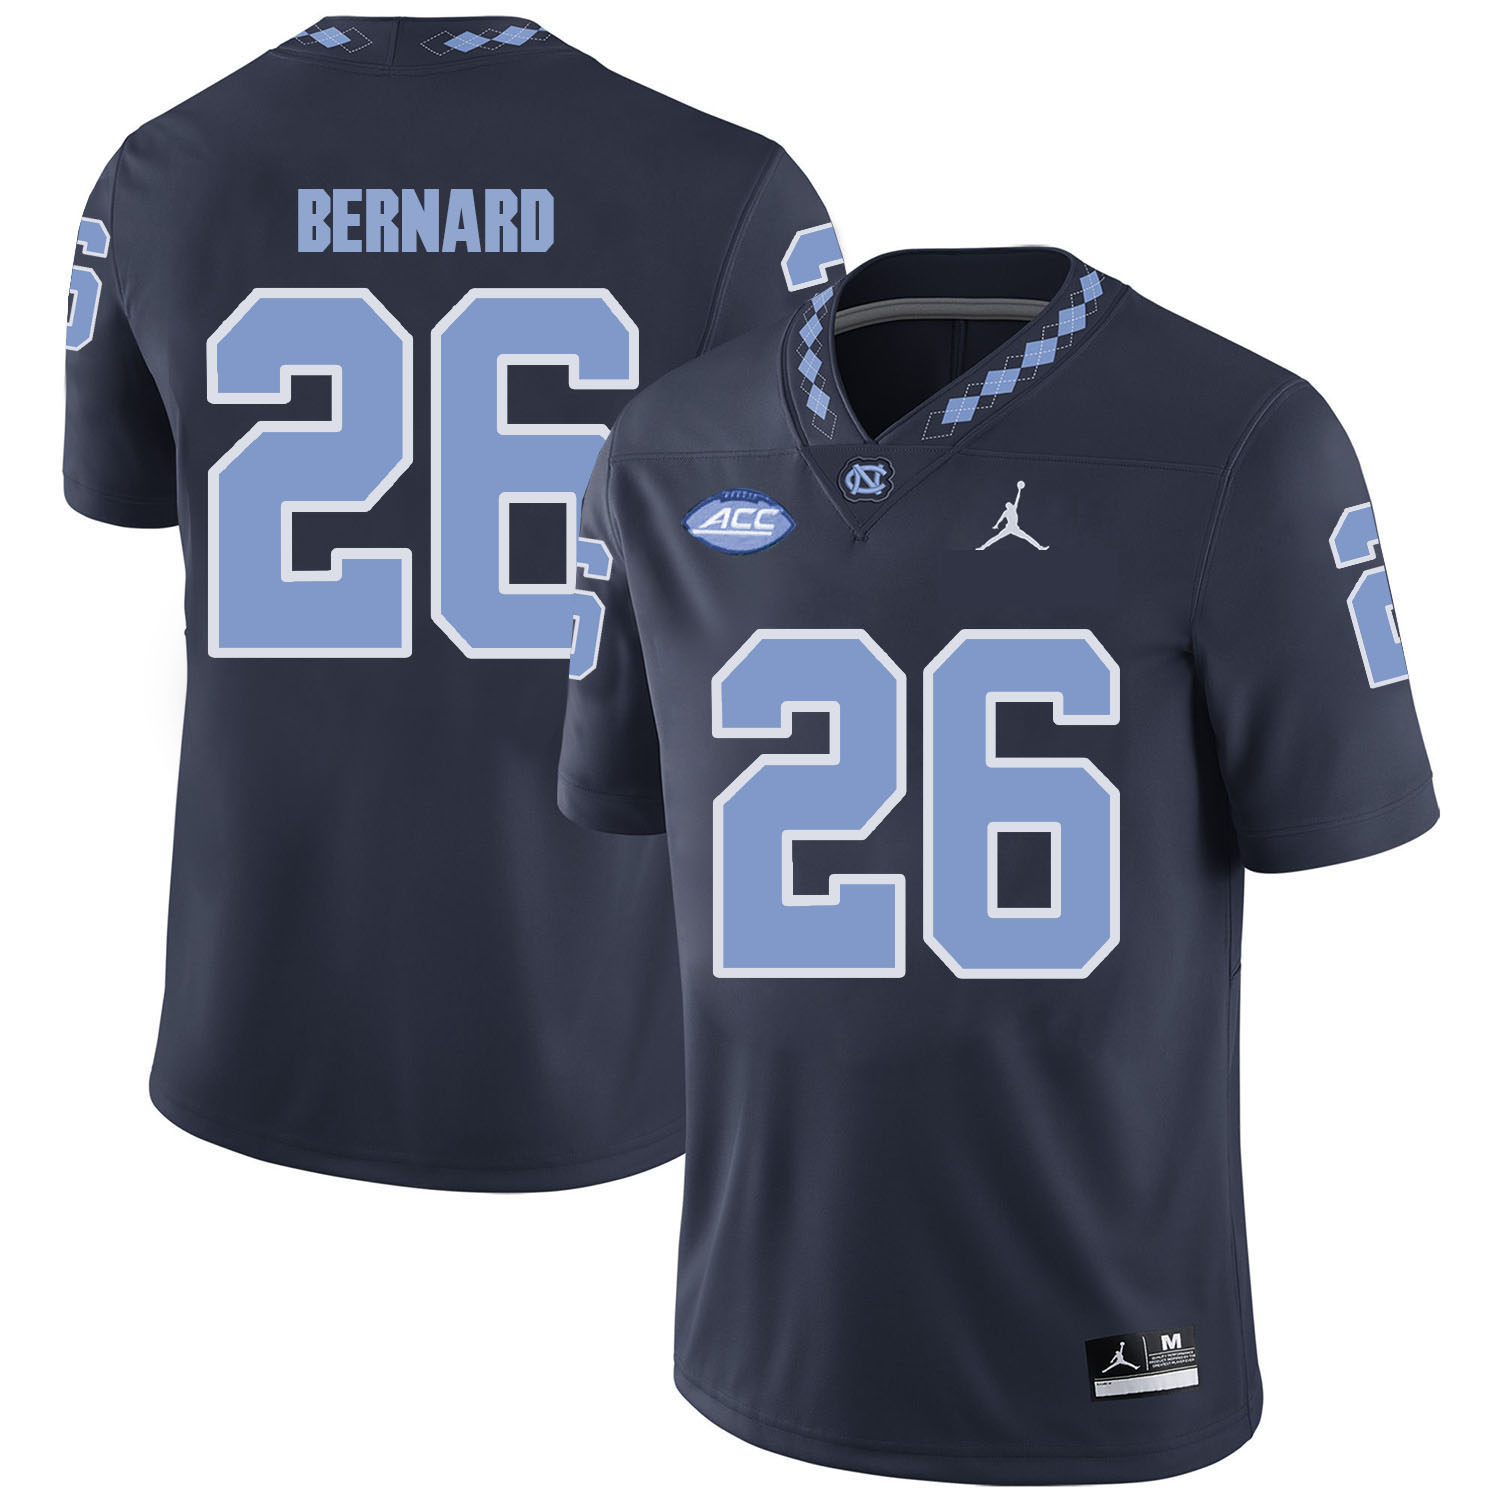 North Carolina Tar Heels 26 Giovani Bernard Black College Football Jersey